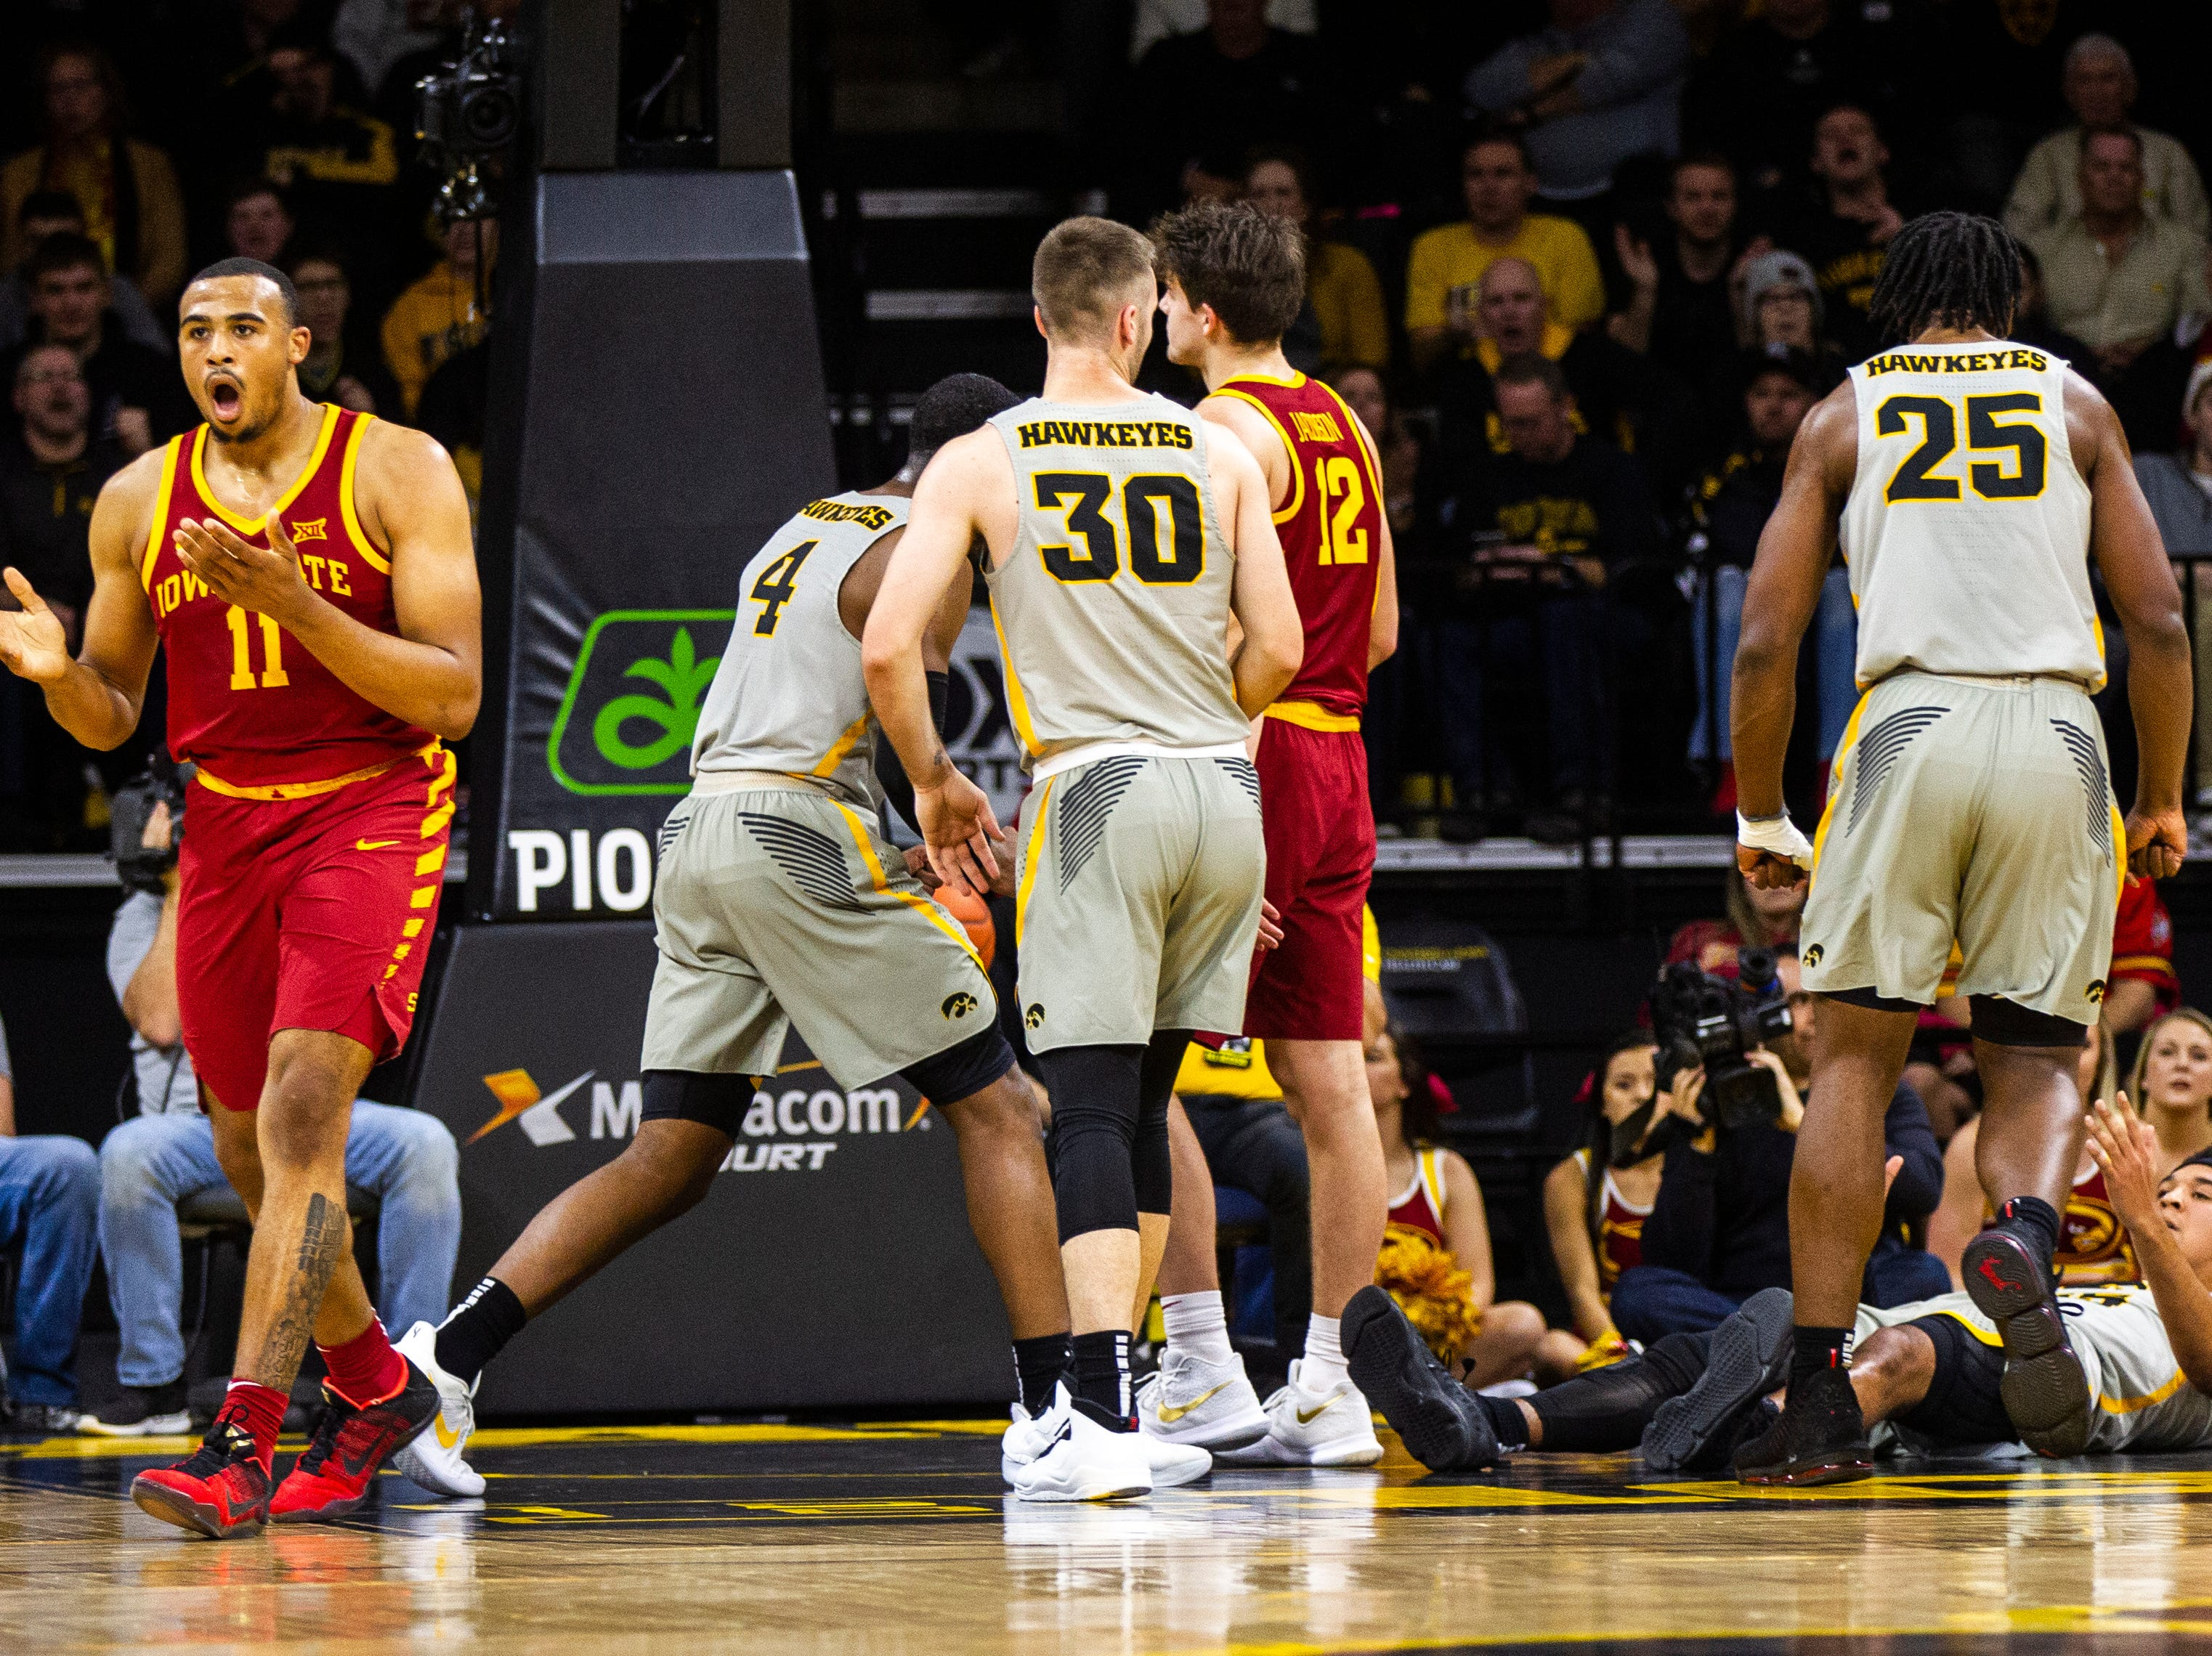 Iowa State guard Talen Horton-Tucker (11) reacts to a foul while Iowa forward Tyler Cook (25) helps up Iowa forward Cordell Pemsl (35) during a NCAA Cy-Hawk series men's basketball game on Thursday, Dec. 6, 2018, at Carver-Hawkeye Arena in Iowa City.